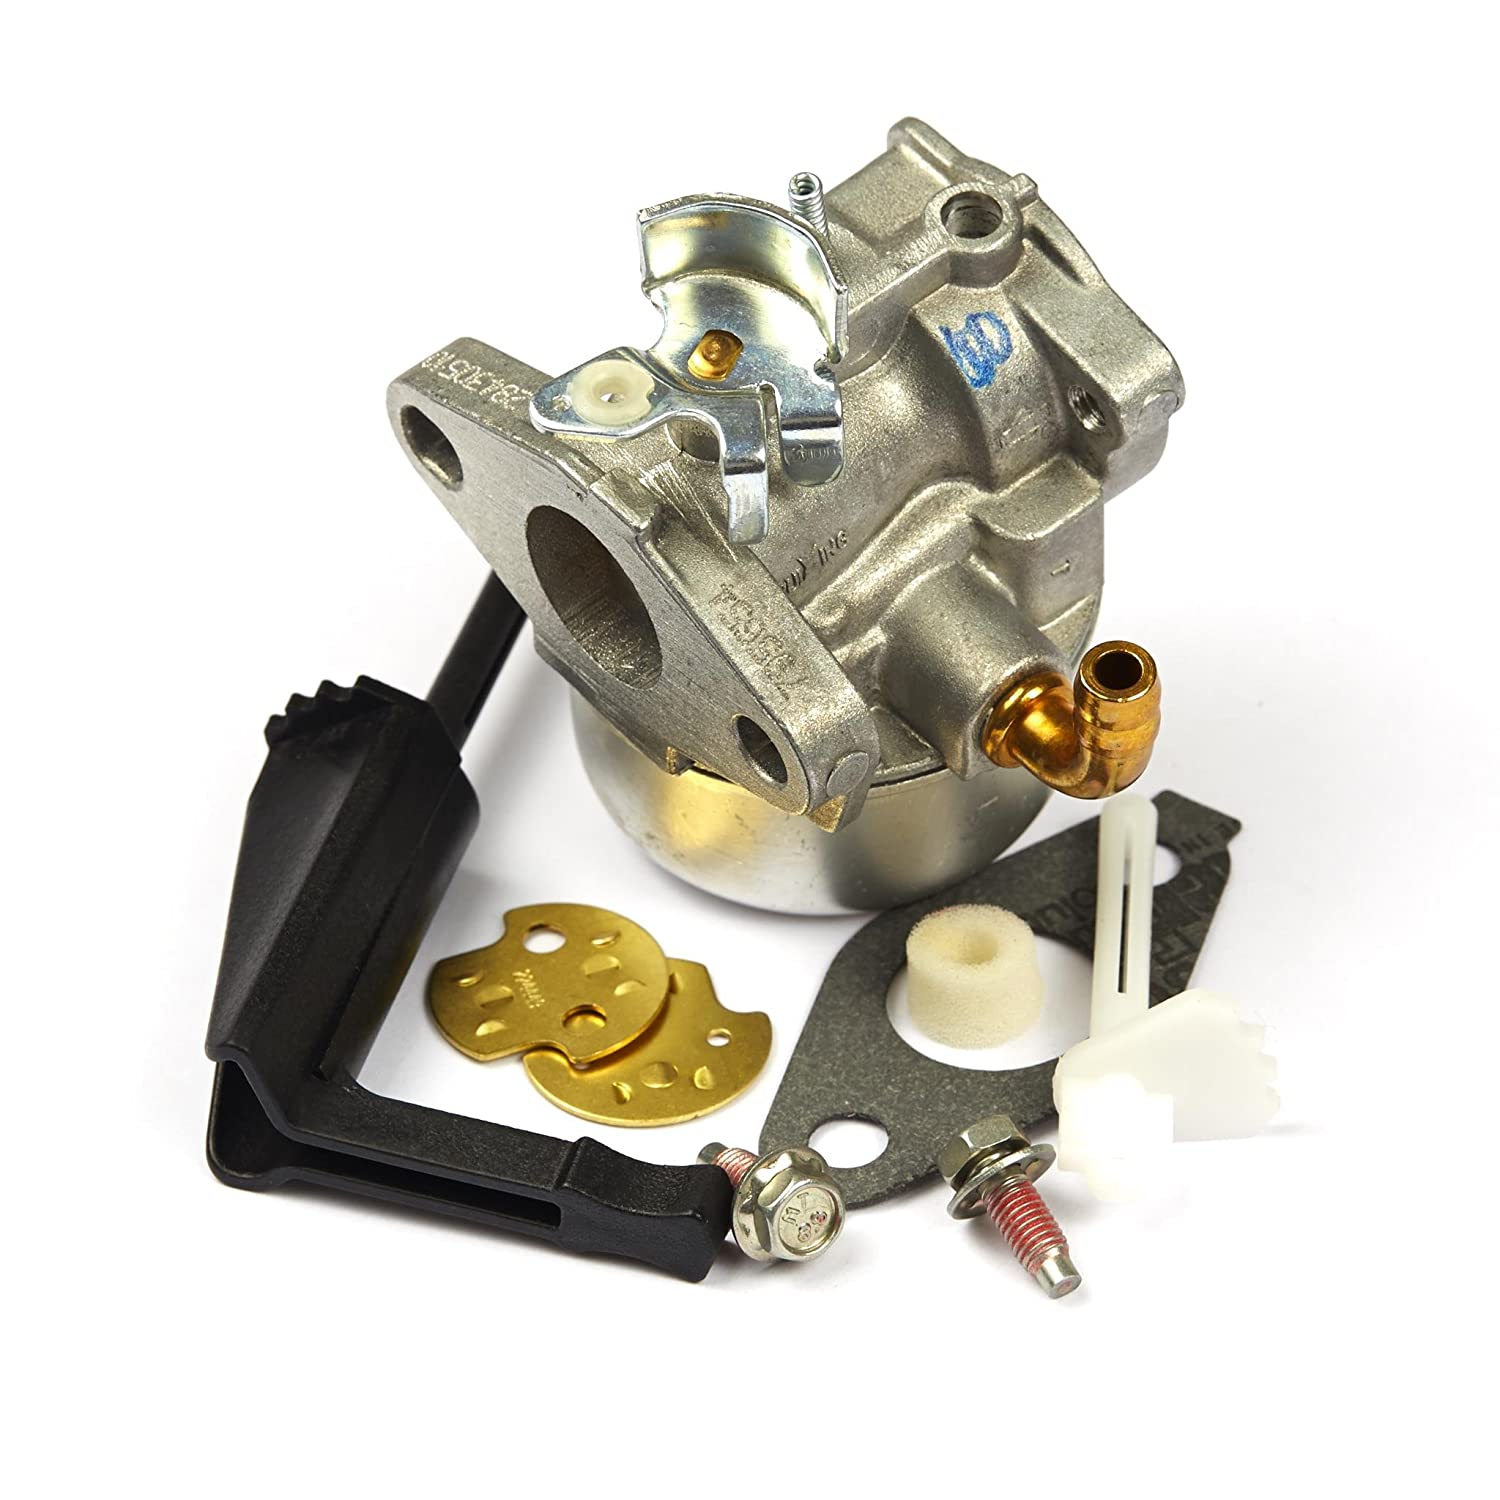 Briggs Stratton 798653 Carburetor Replaces 697354 Intek Ohv Engine Parts Diagram 790290 791077 698860 Lawn And Garden Tool Replacement Outdoor